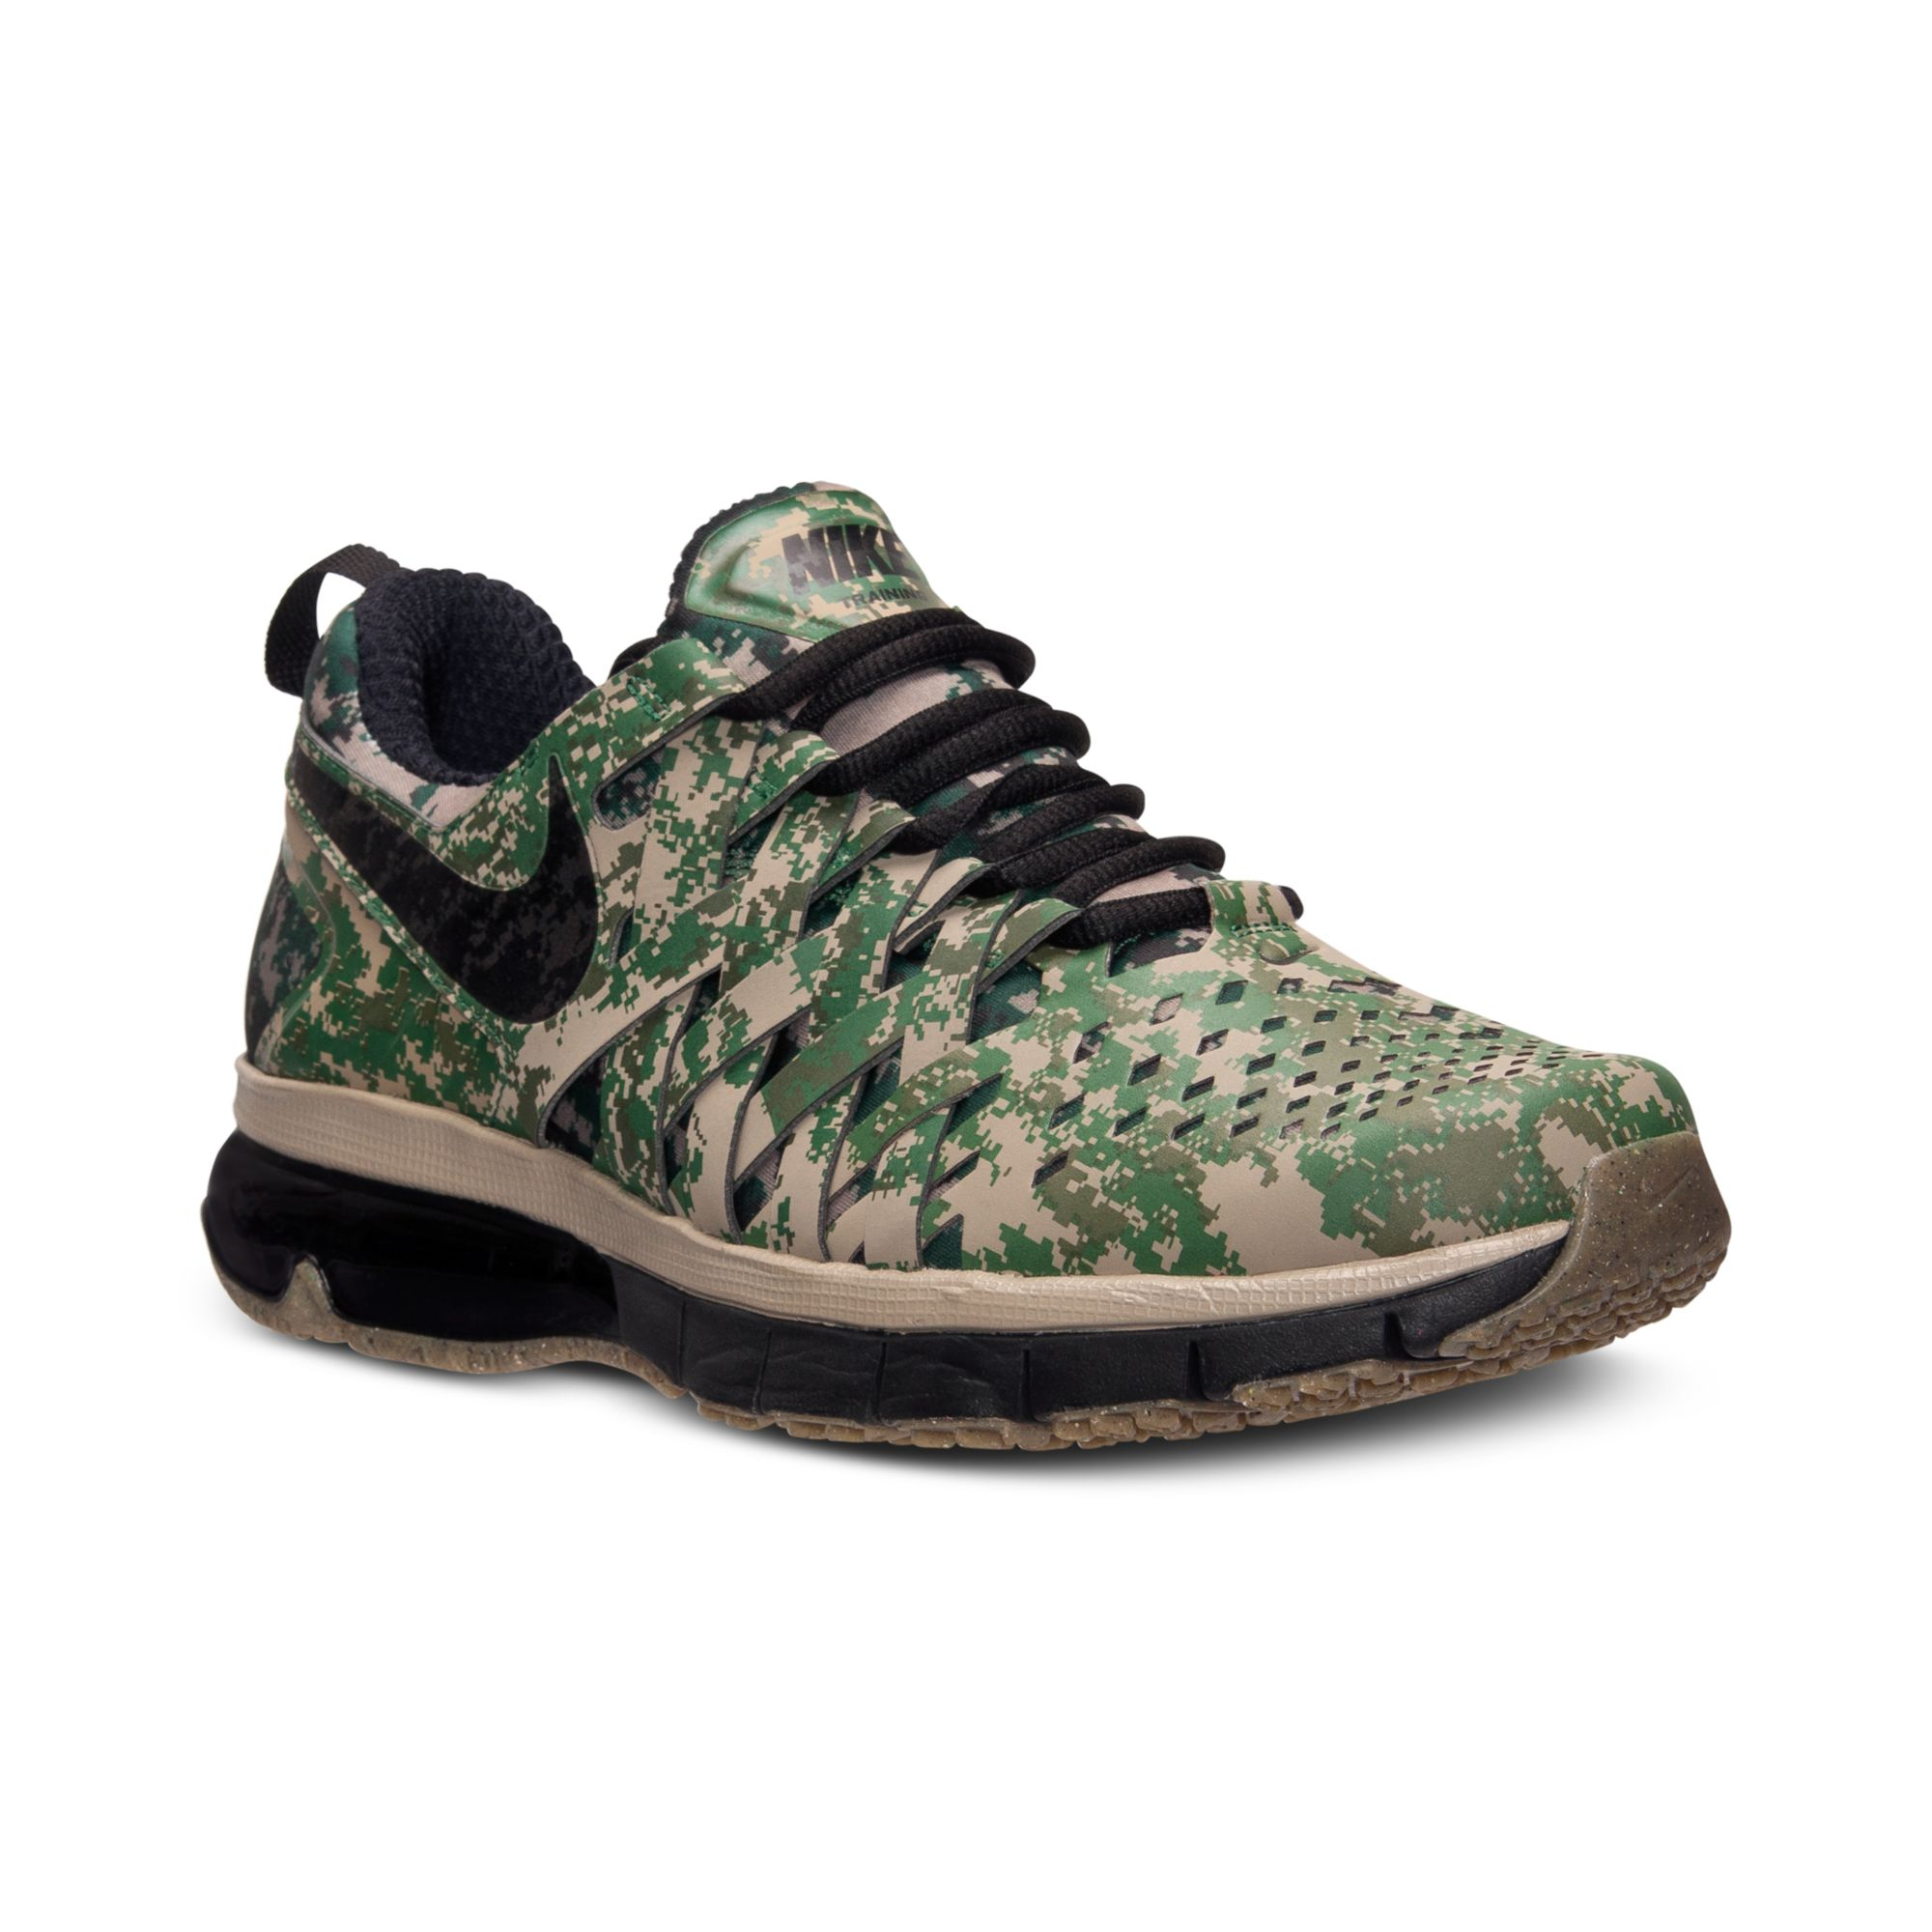 Camo Tennis Shoes Women